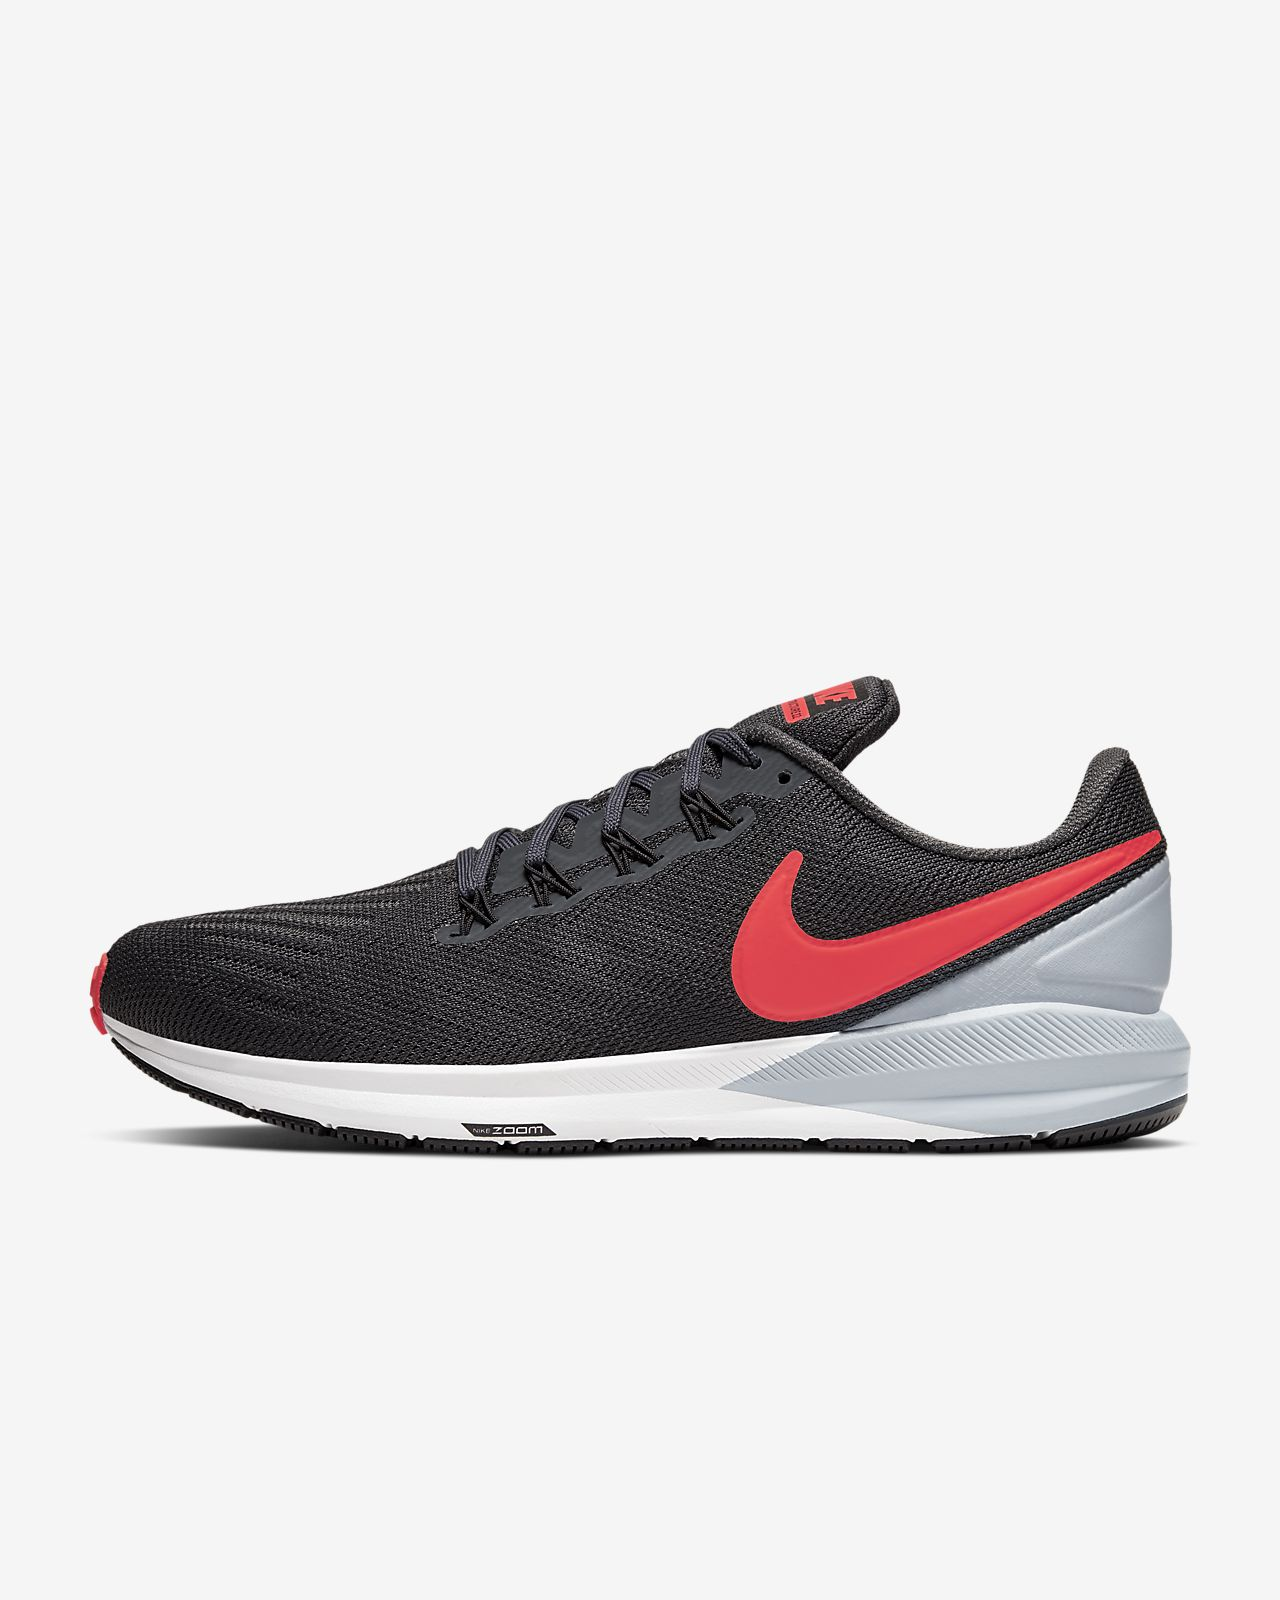 Nike Air Zoom Structure 22 男款跑鞋